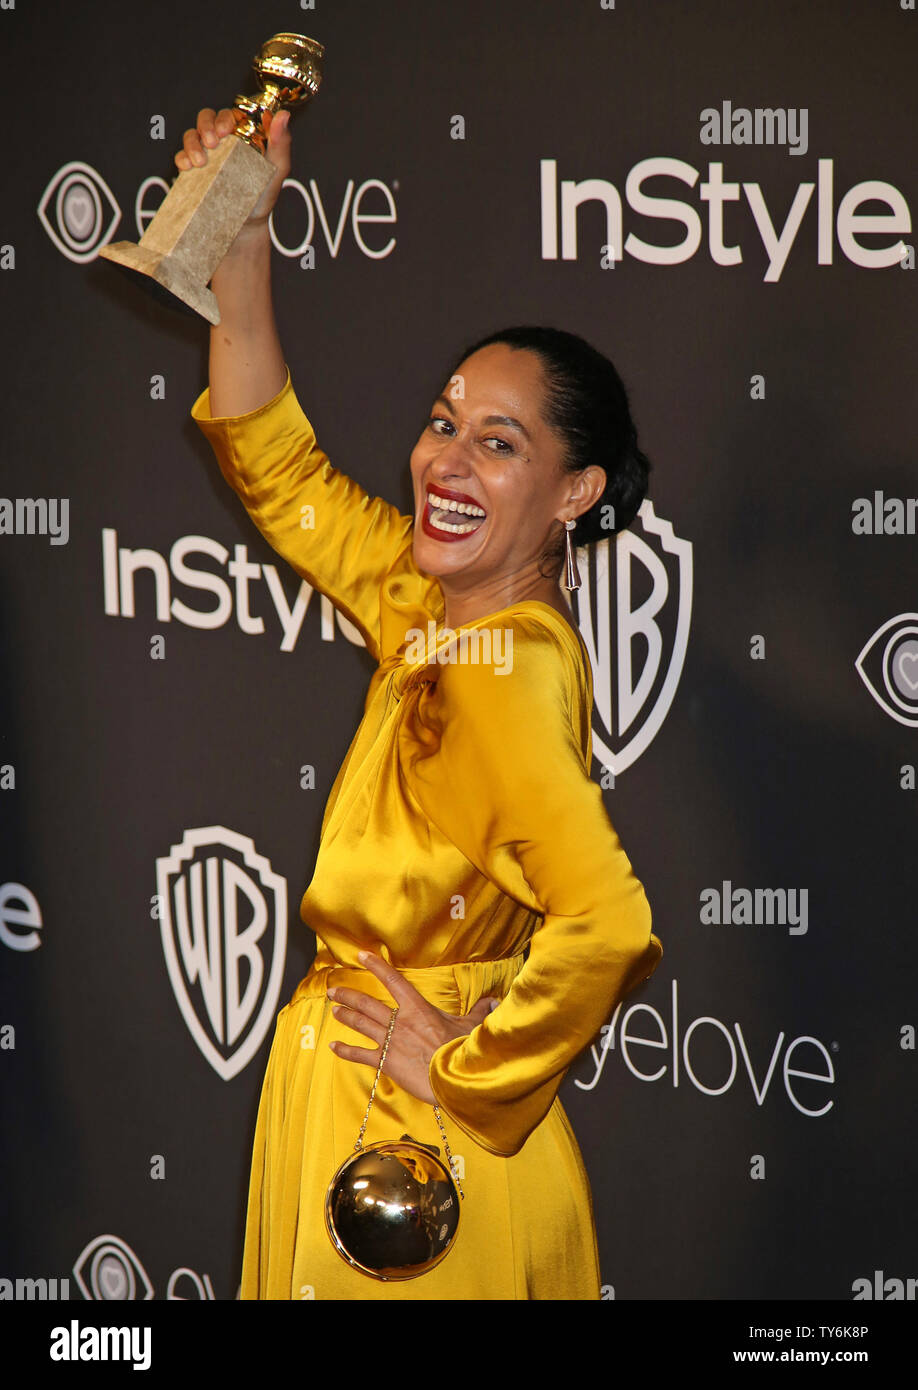 Tracee Ellis Ross attends the 18th annual InStyle and Warner Bros. Golden Globe after-party at the Beverly Hilton Hotel in Beverly Hills, California on January 8, 2017.  Photo by David Silpa/UPI - Stock Image